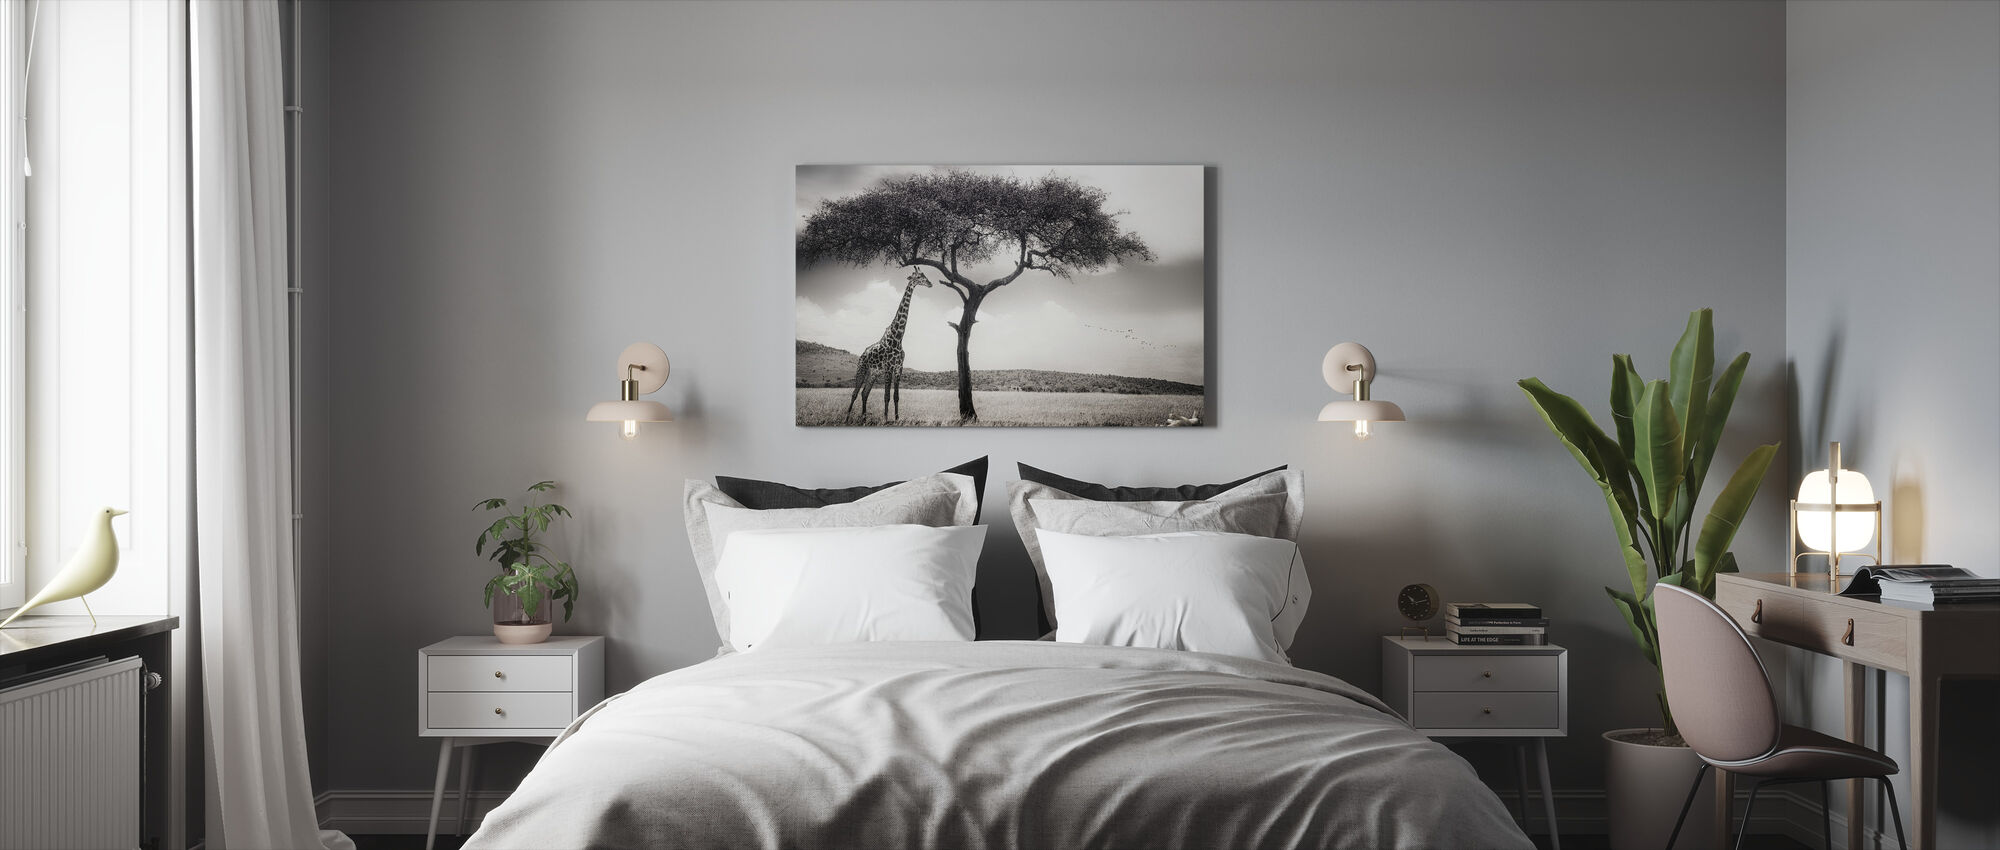 Under the African Sun - Canvas print - Bedroom